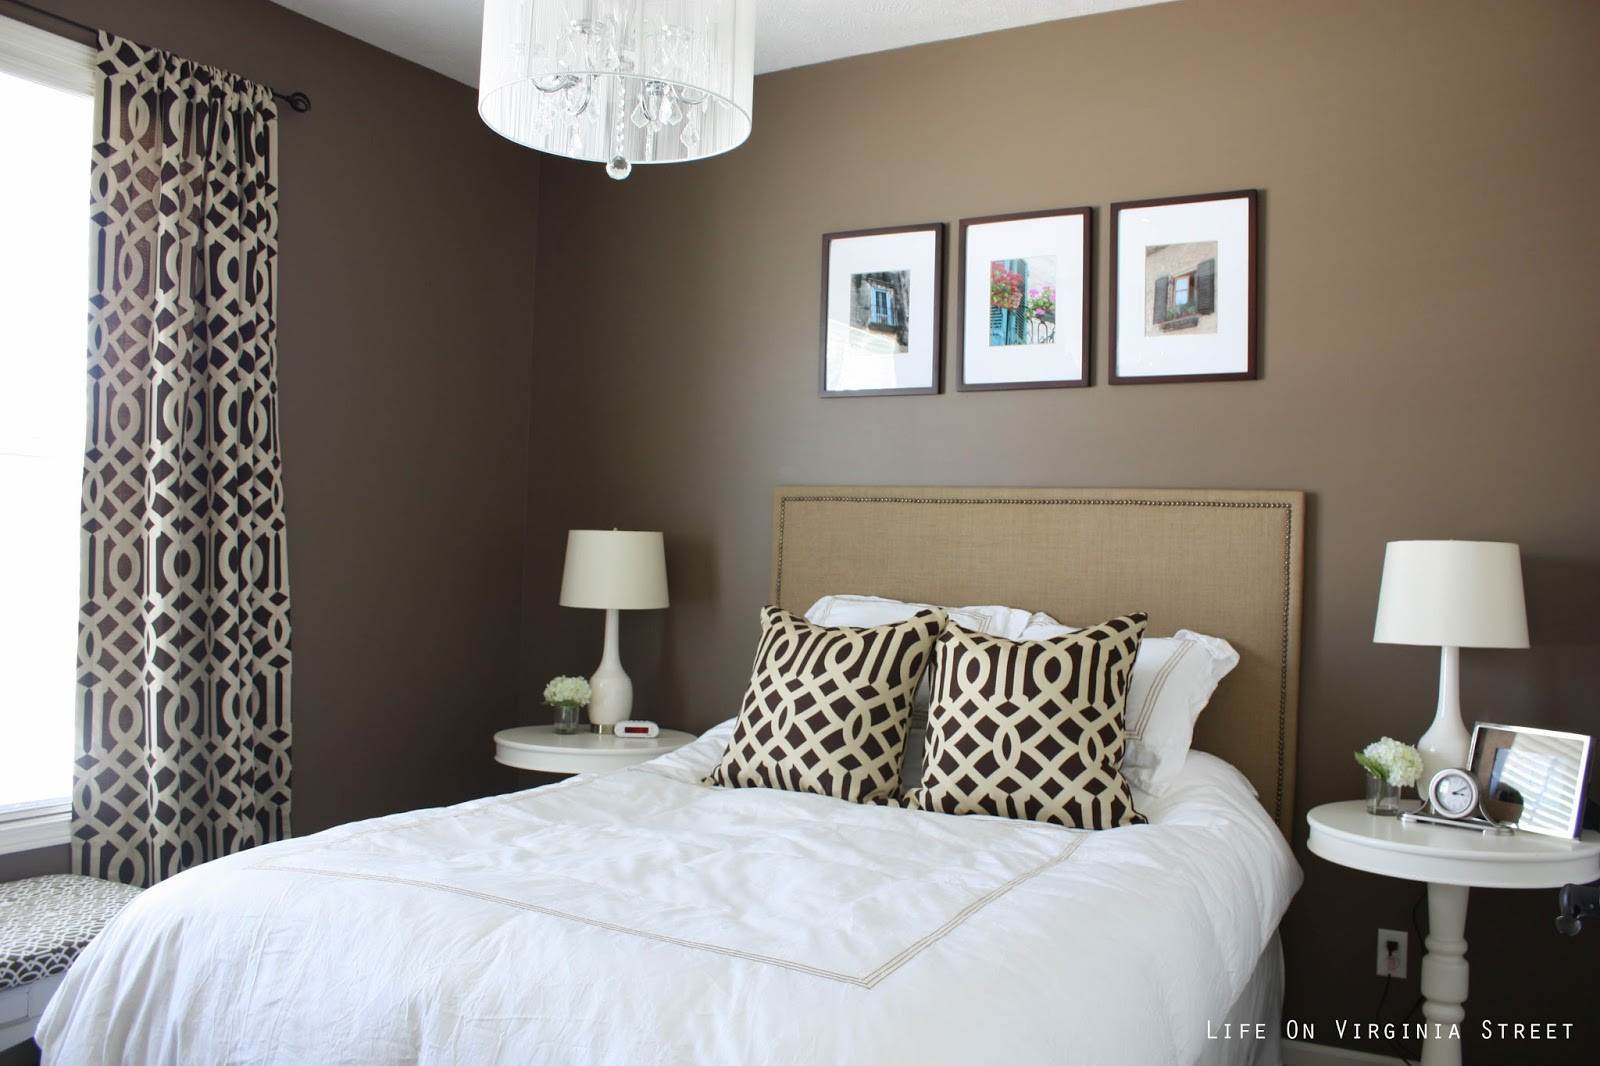 Best ideas about Paint Colors For Bedroom . Save or Pin Paint Colors Life Virginia Street Now.